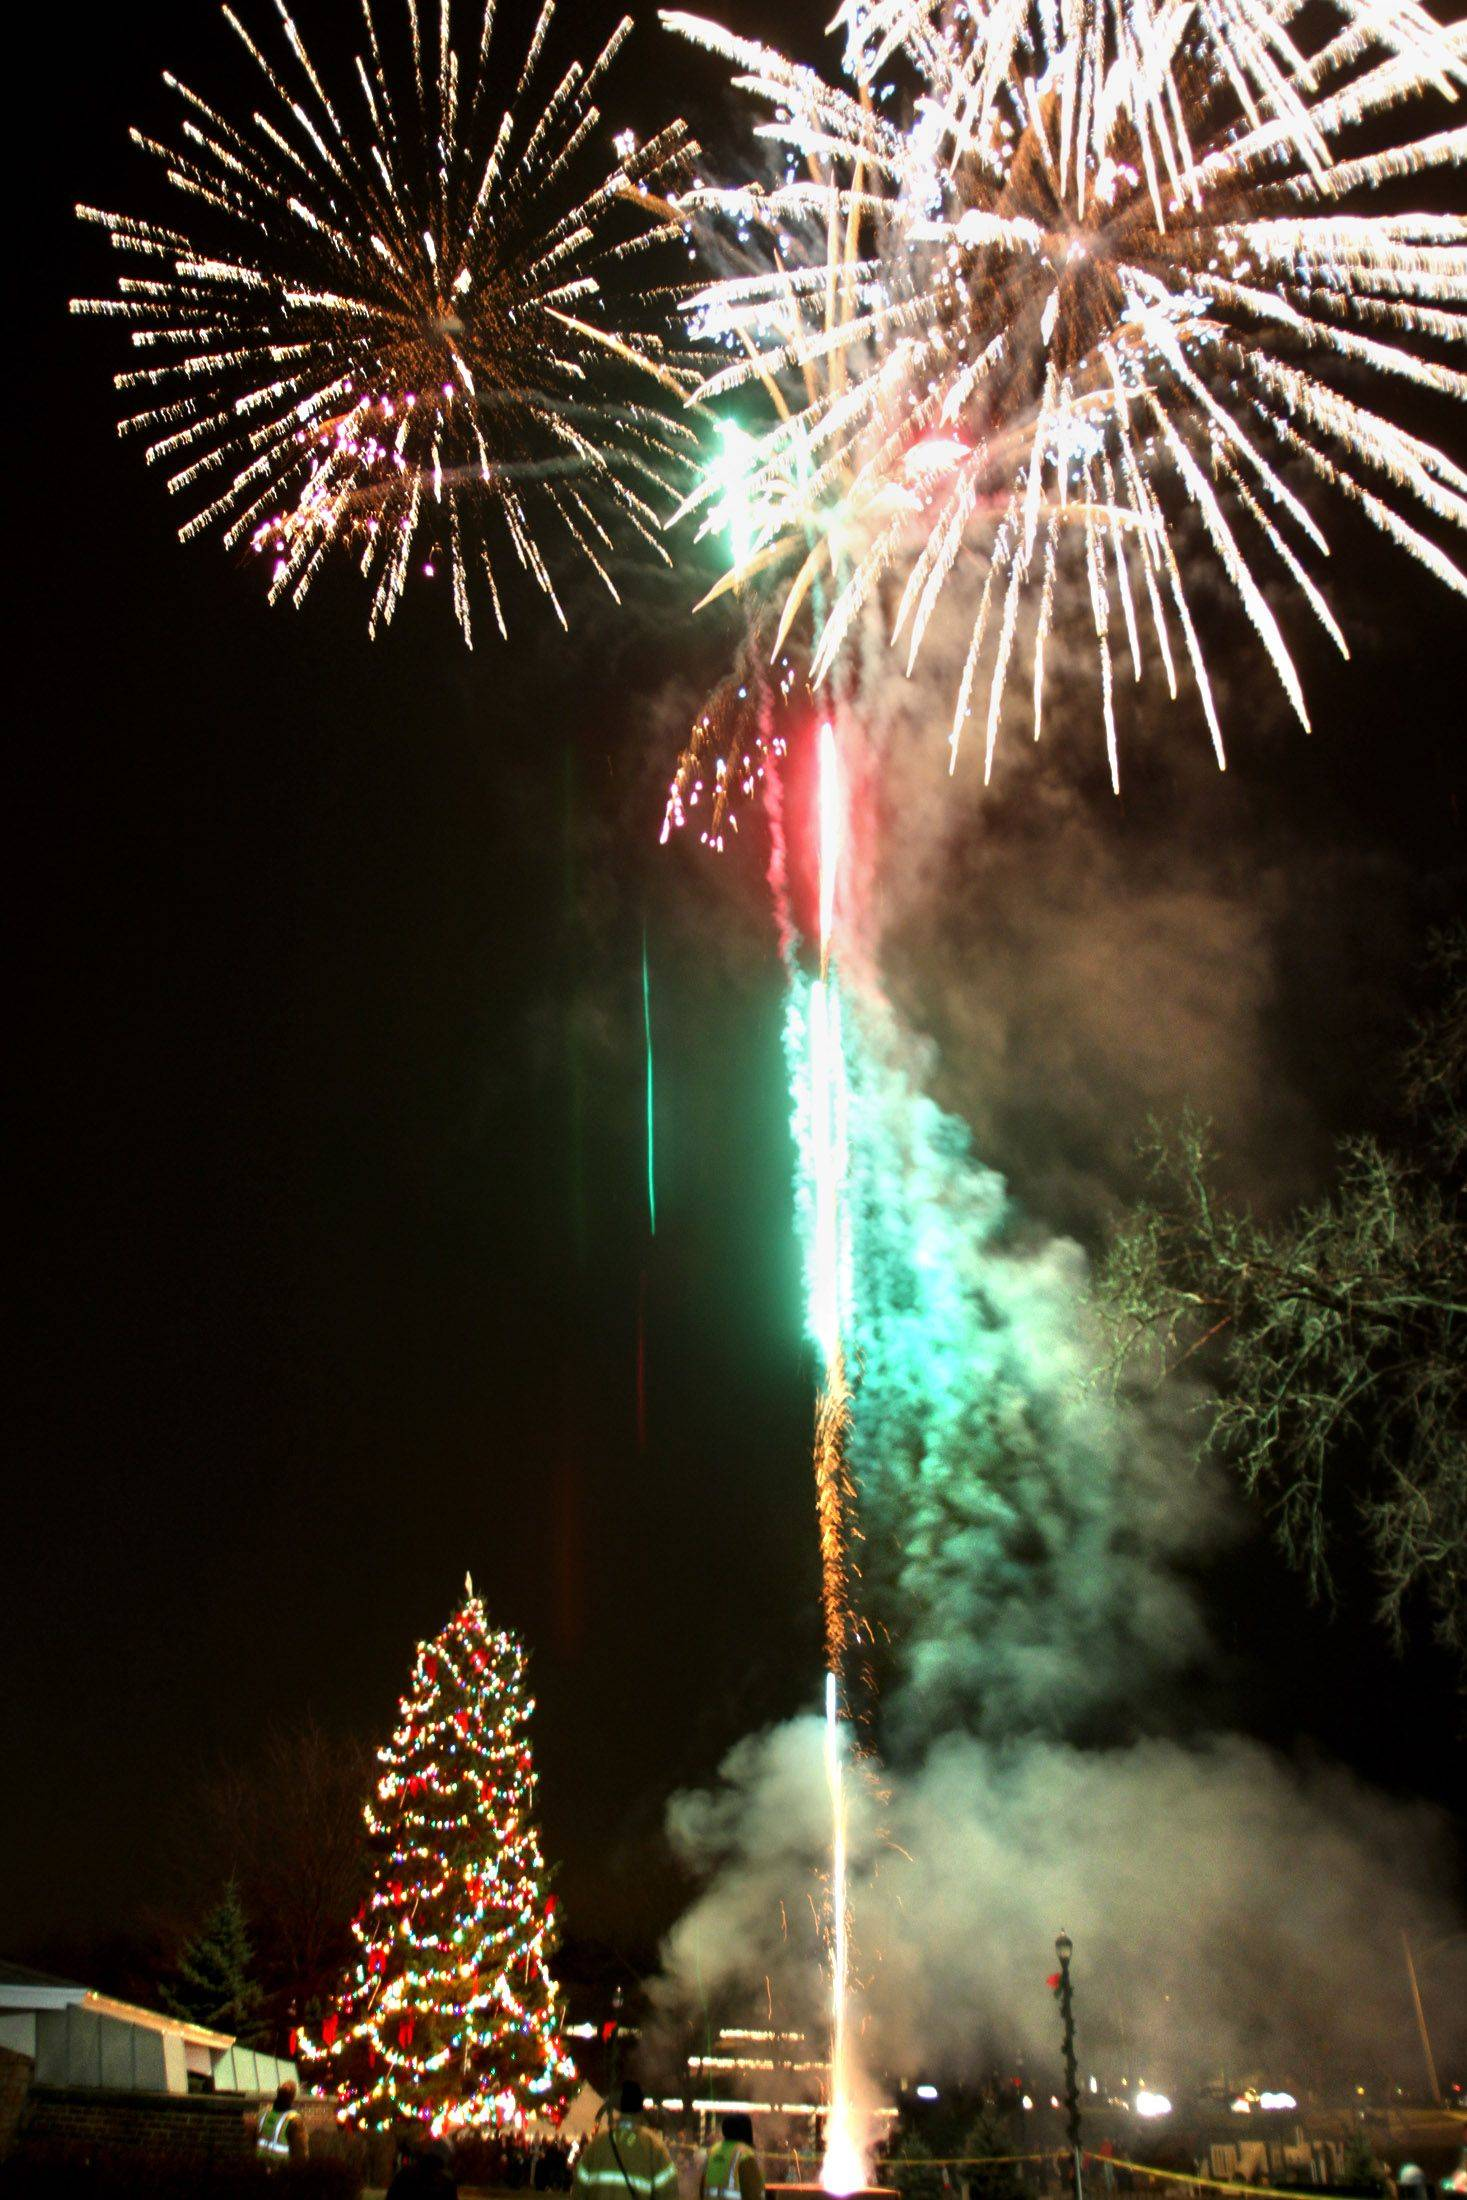 Mundelein's annual village holiday tree lighting ceremony ended with a five-minute fireworks display above the 30-foot spruce tree at Kracklauer Park on Friday, December 3.